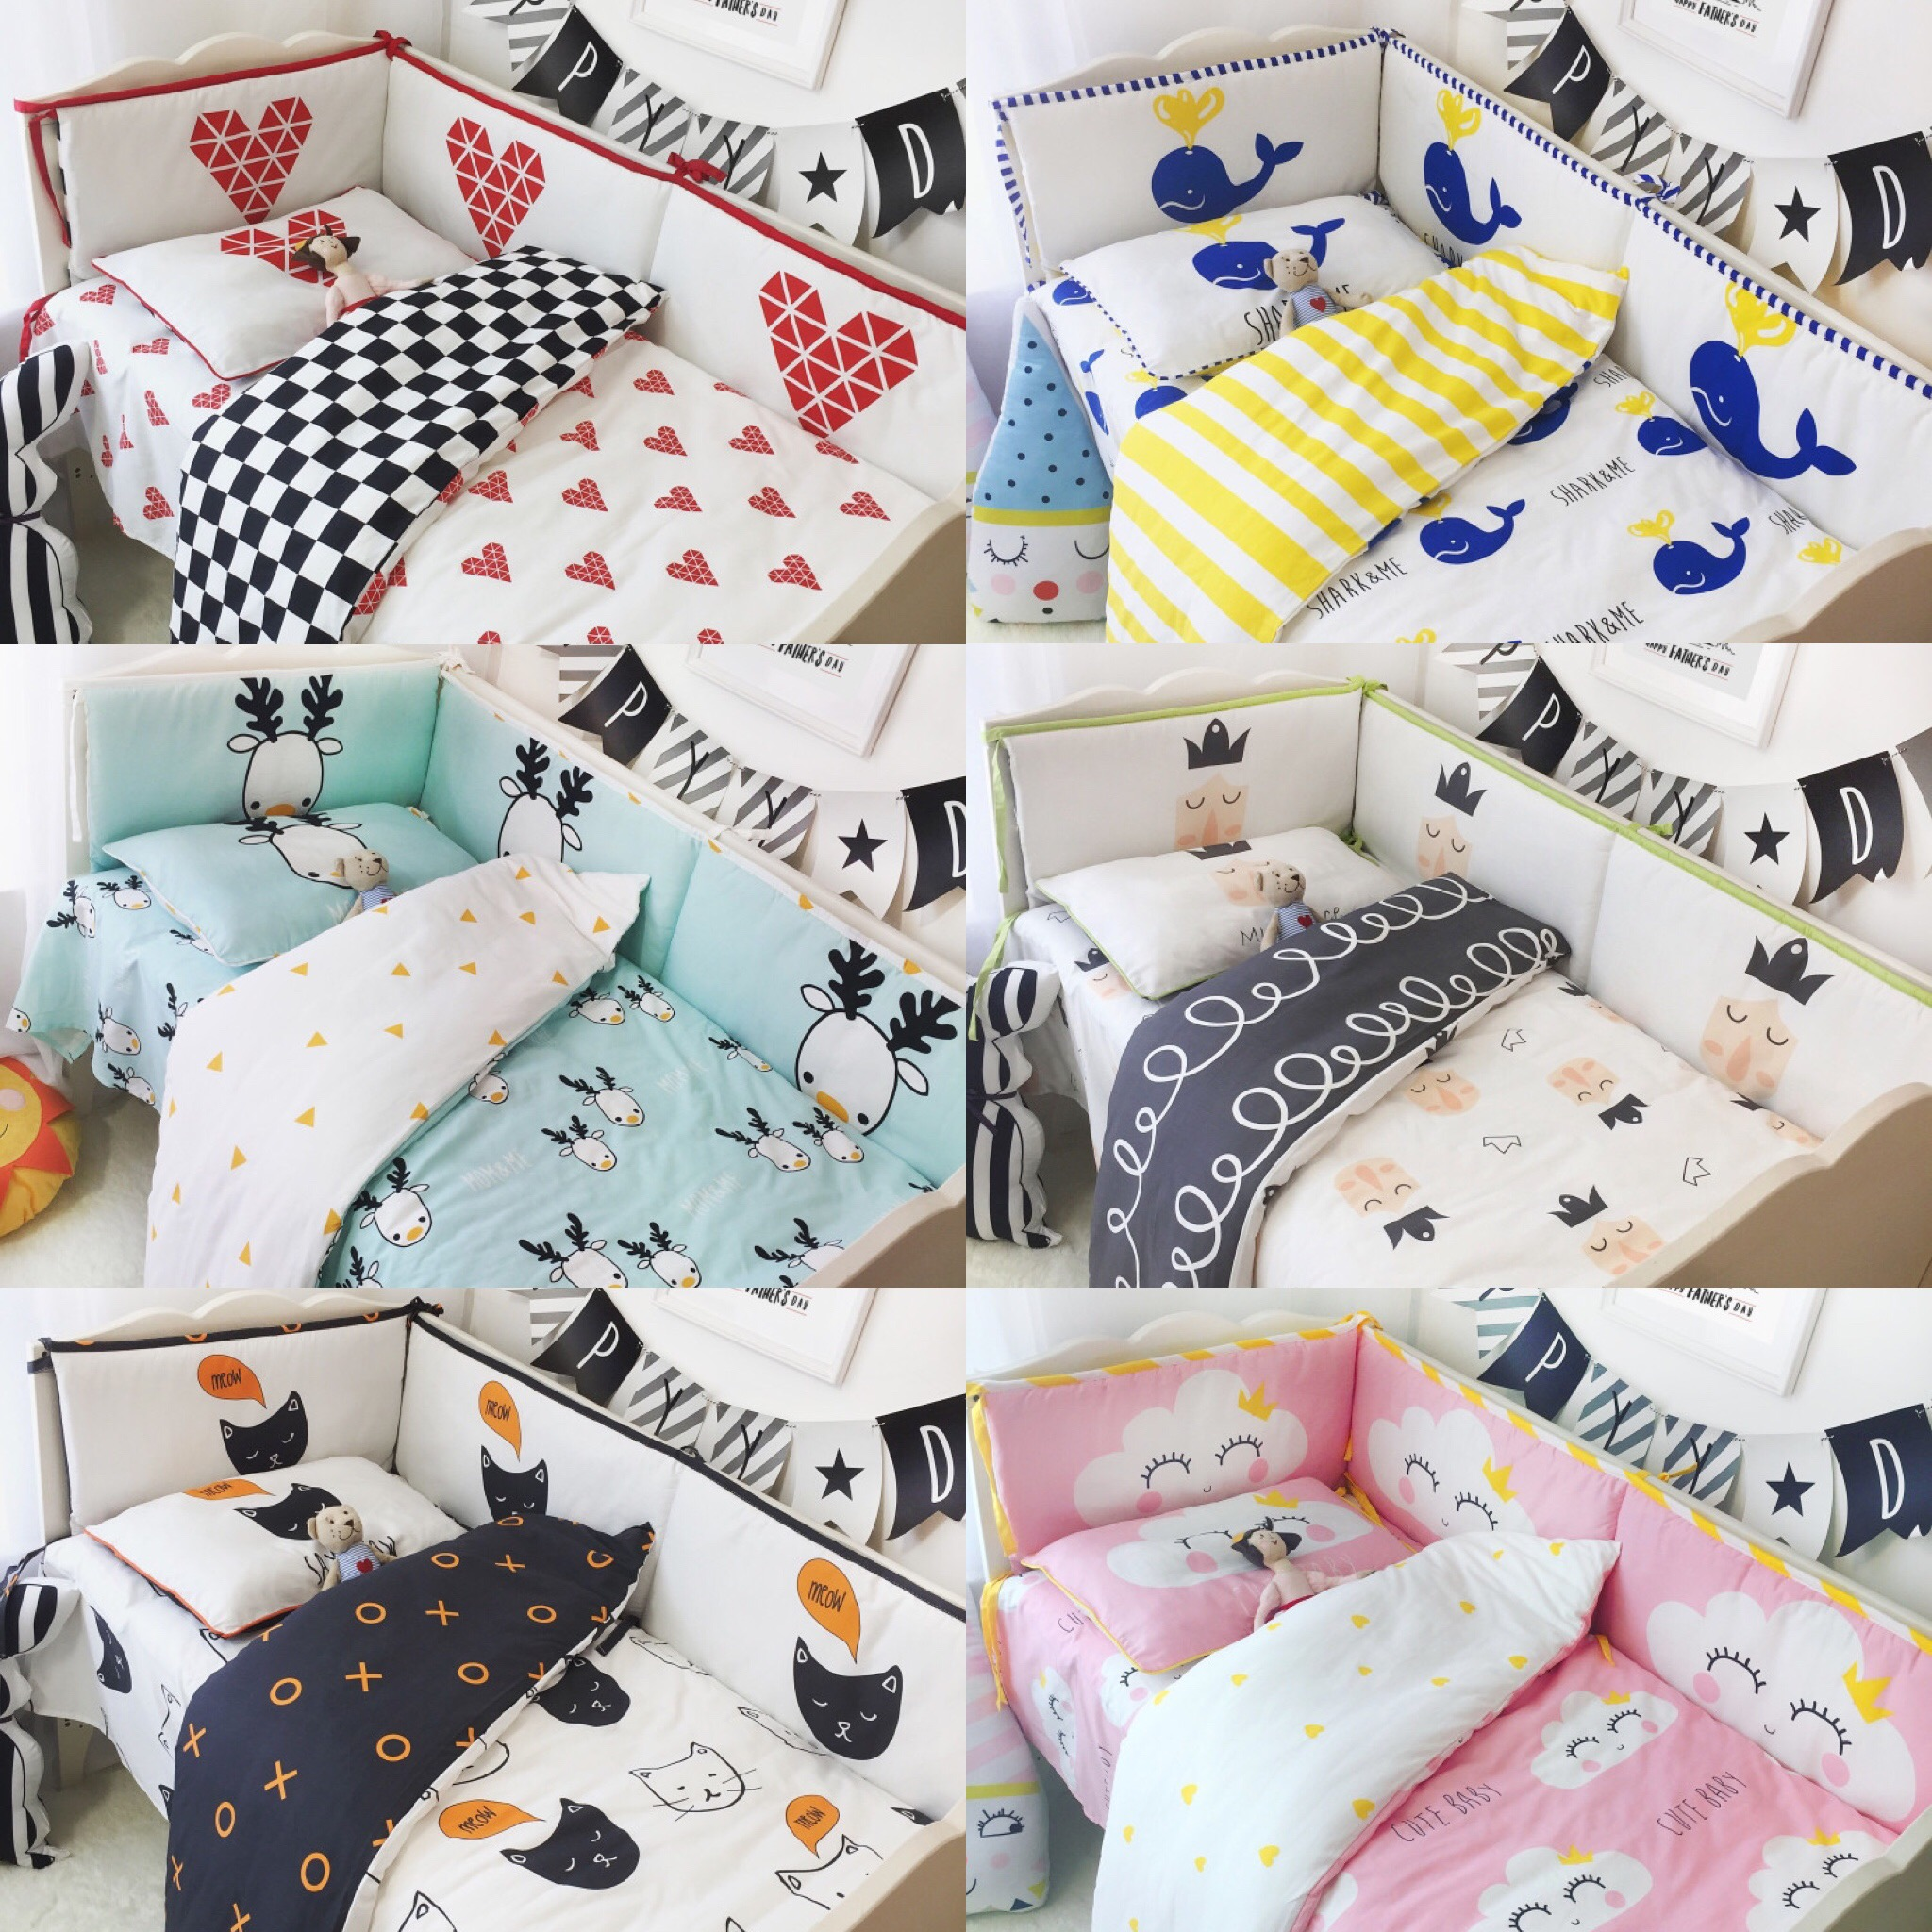 7pcs / set Ins baby bedding cotton baby bedding cot set Bumper Baby Cot Sets Bed Around Protector Pink Clouds Deer whale crown allegri